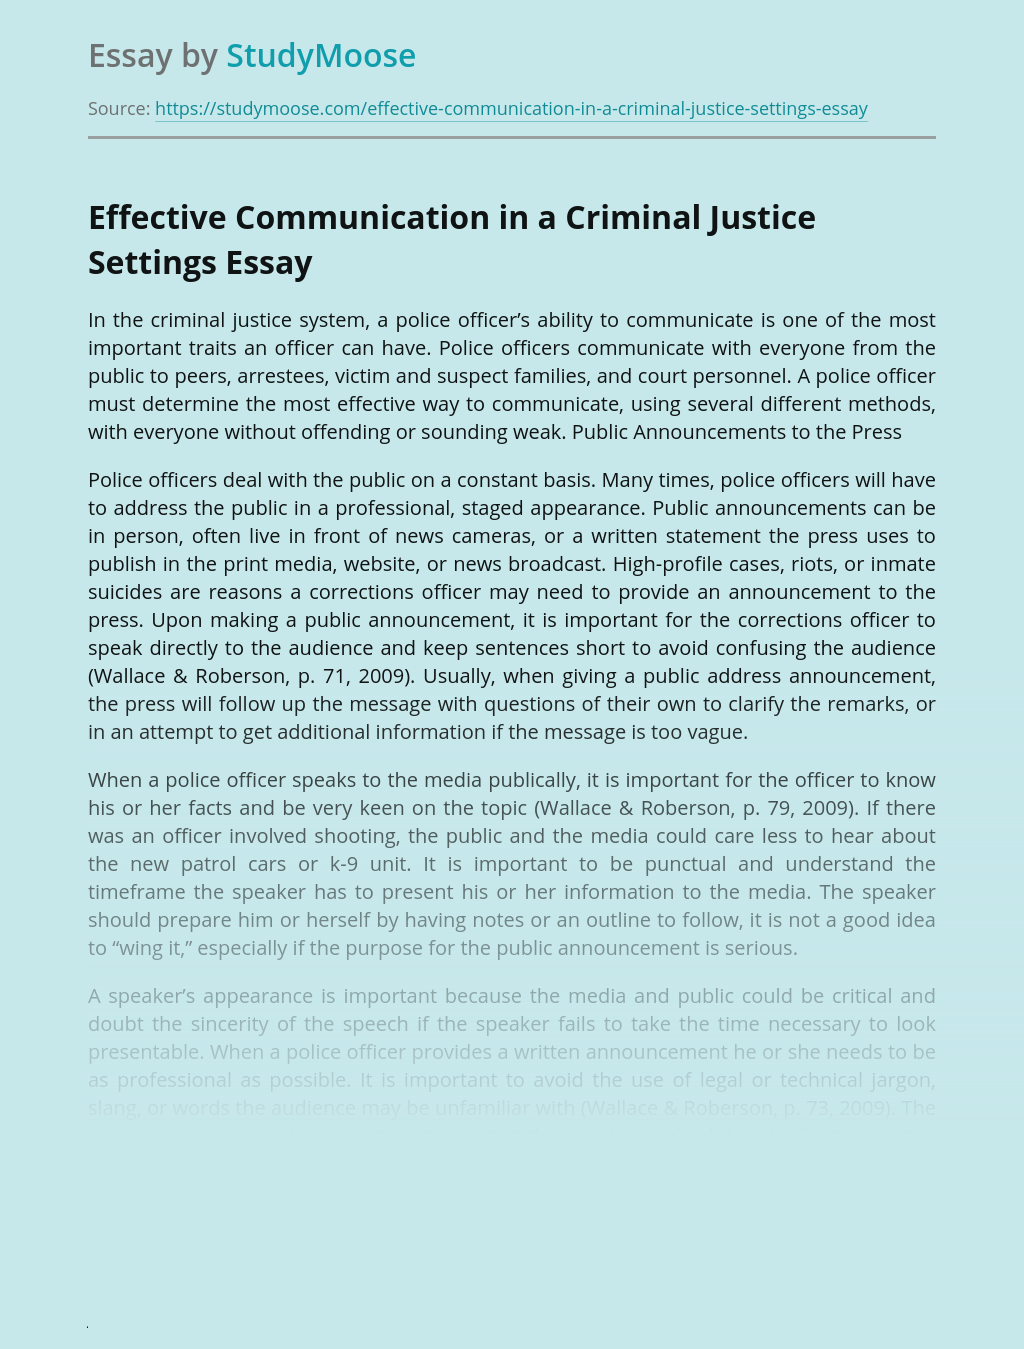 Effective Communication in a Criminal Justice Settings